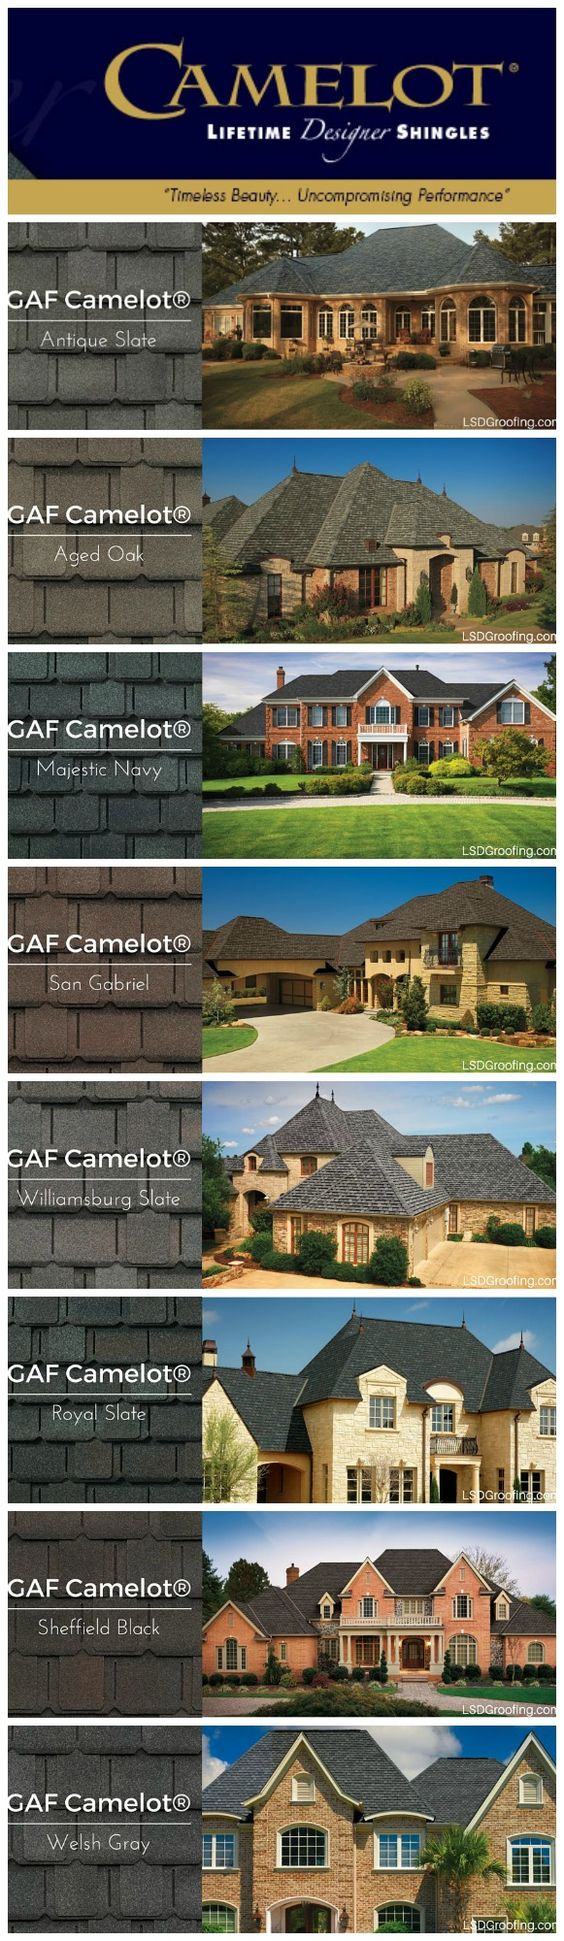 Designer Shingle colors for the house!  http://www.lsdgroofing.com/roofing/shingle-colors/gaf-camelot-shingle-colors/